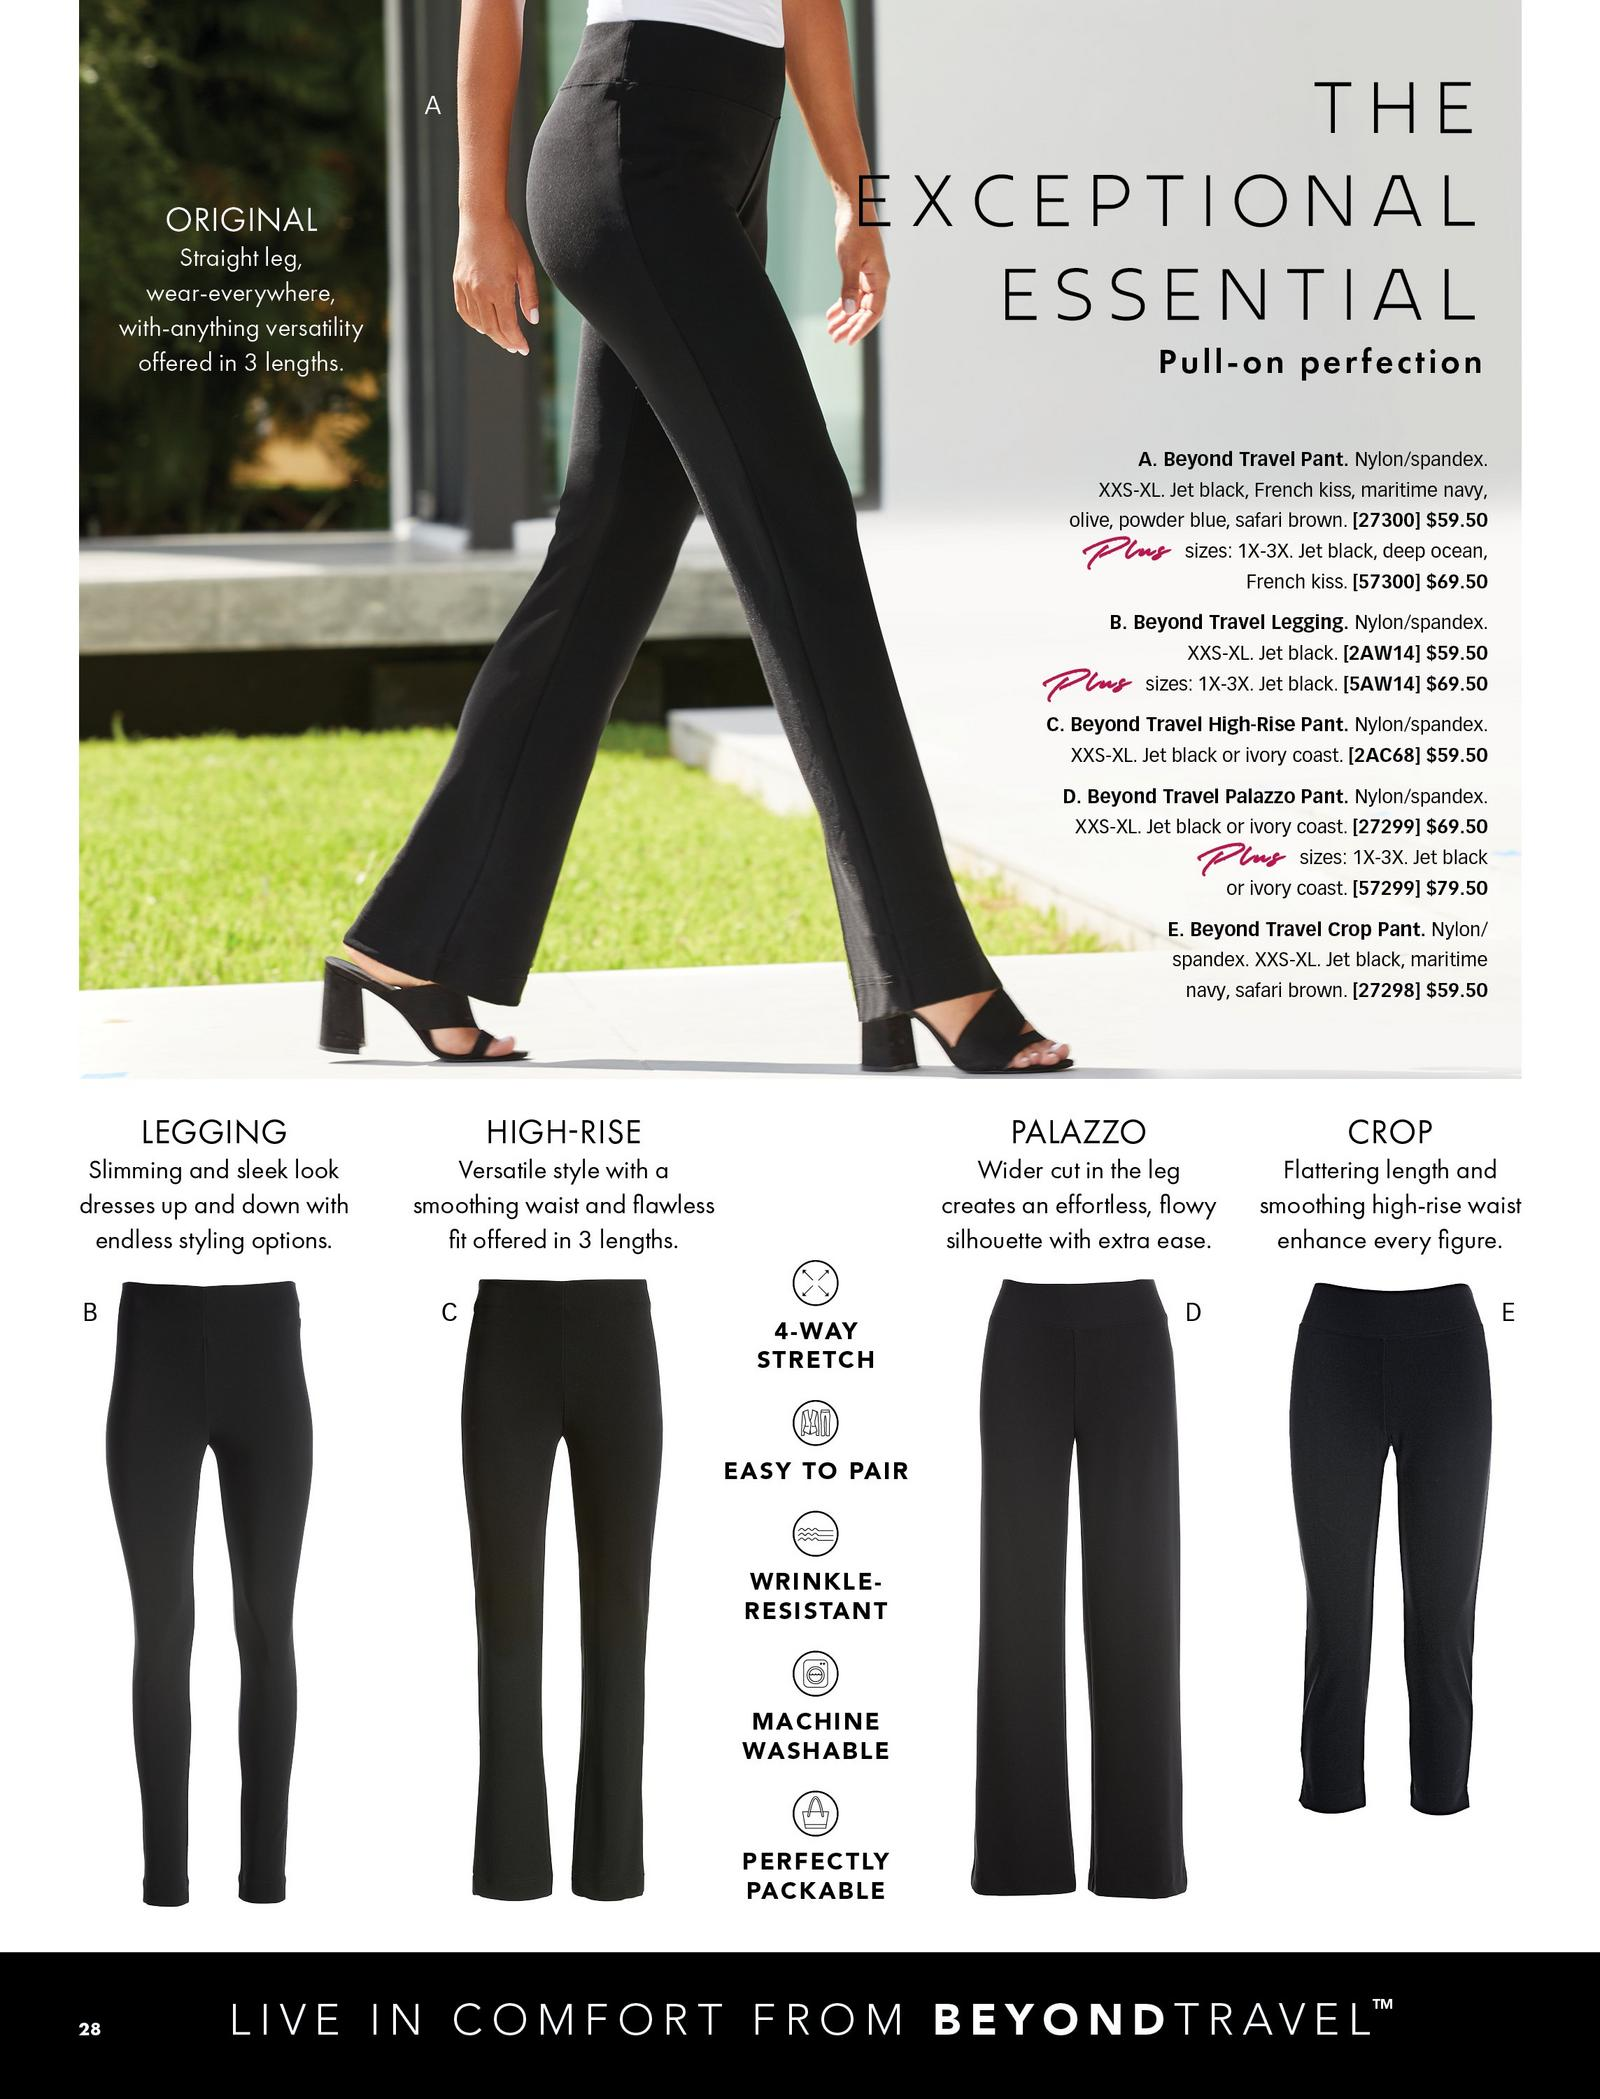 all beyond travel pants shown: the original, the leggings, the high-rise, the palazzo, and the crop.